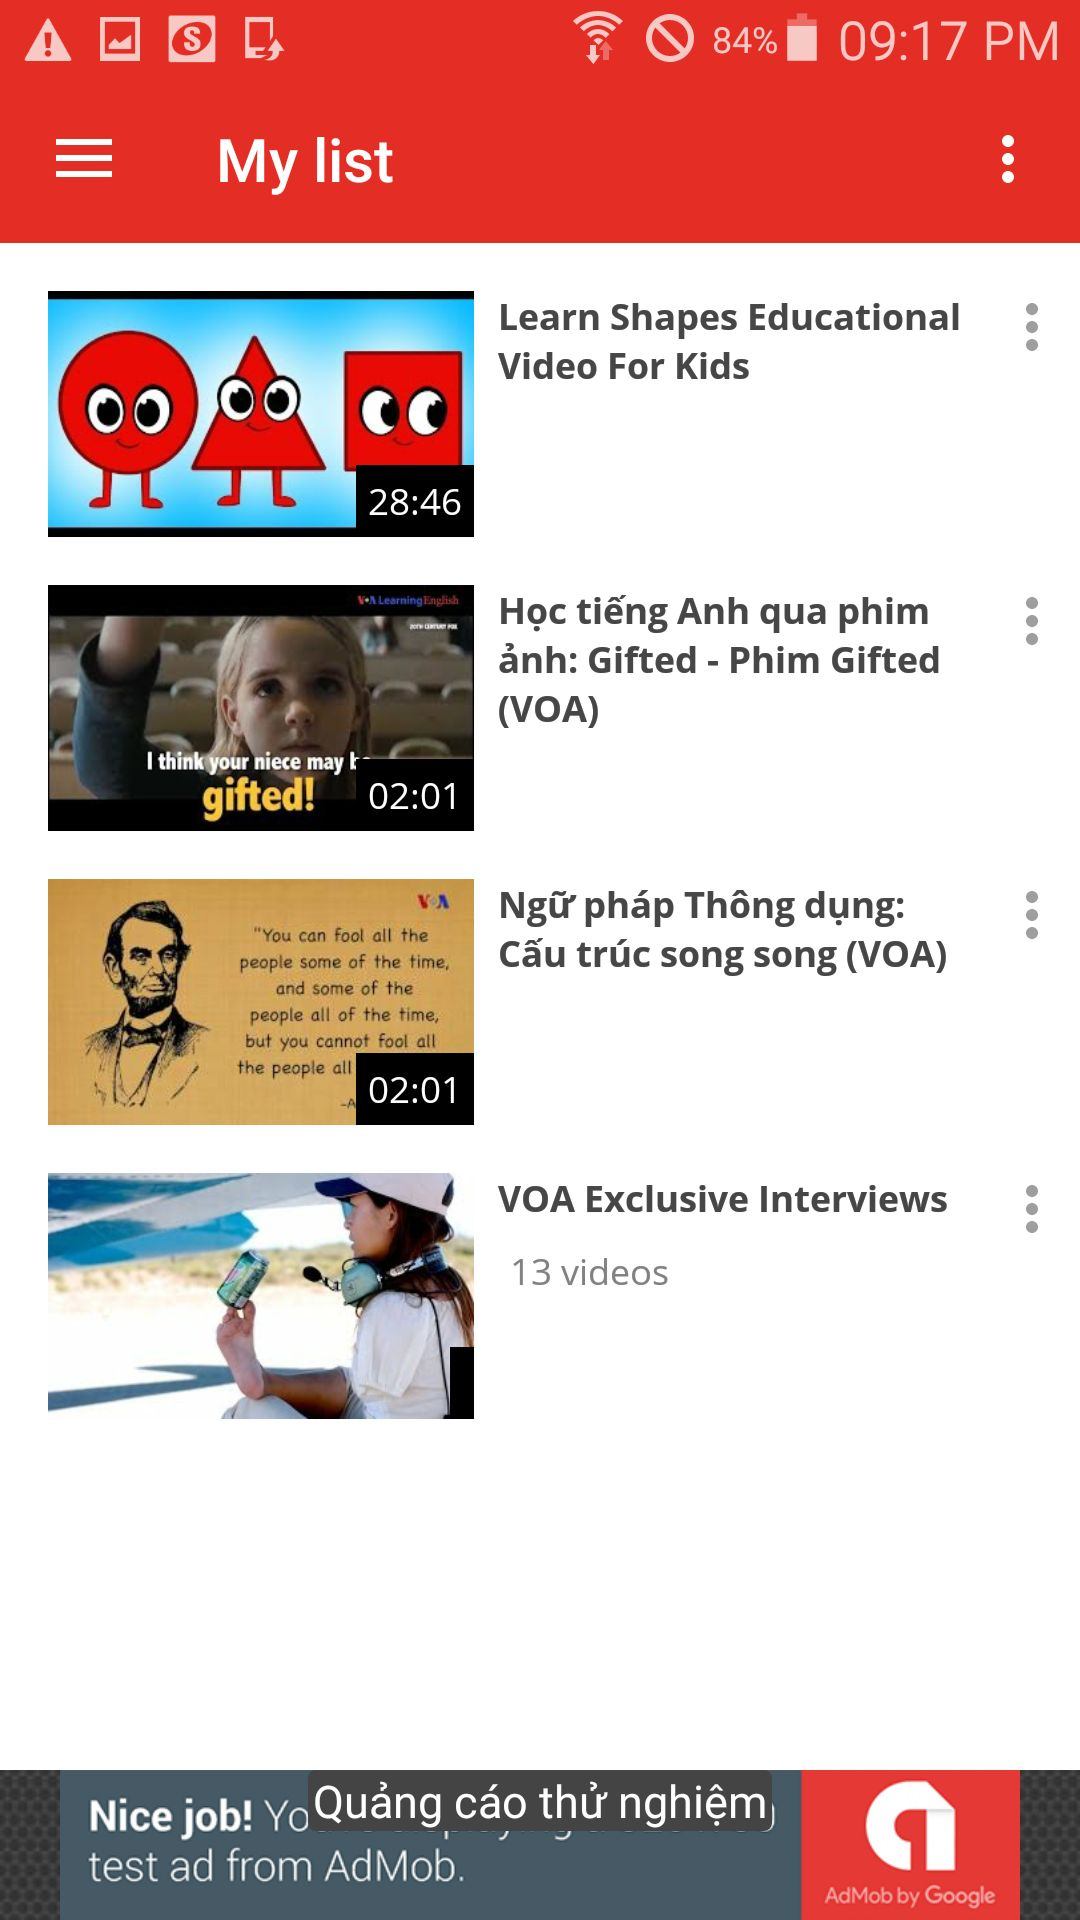 My Youtube Chanel - Android App Template Screenshot 8